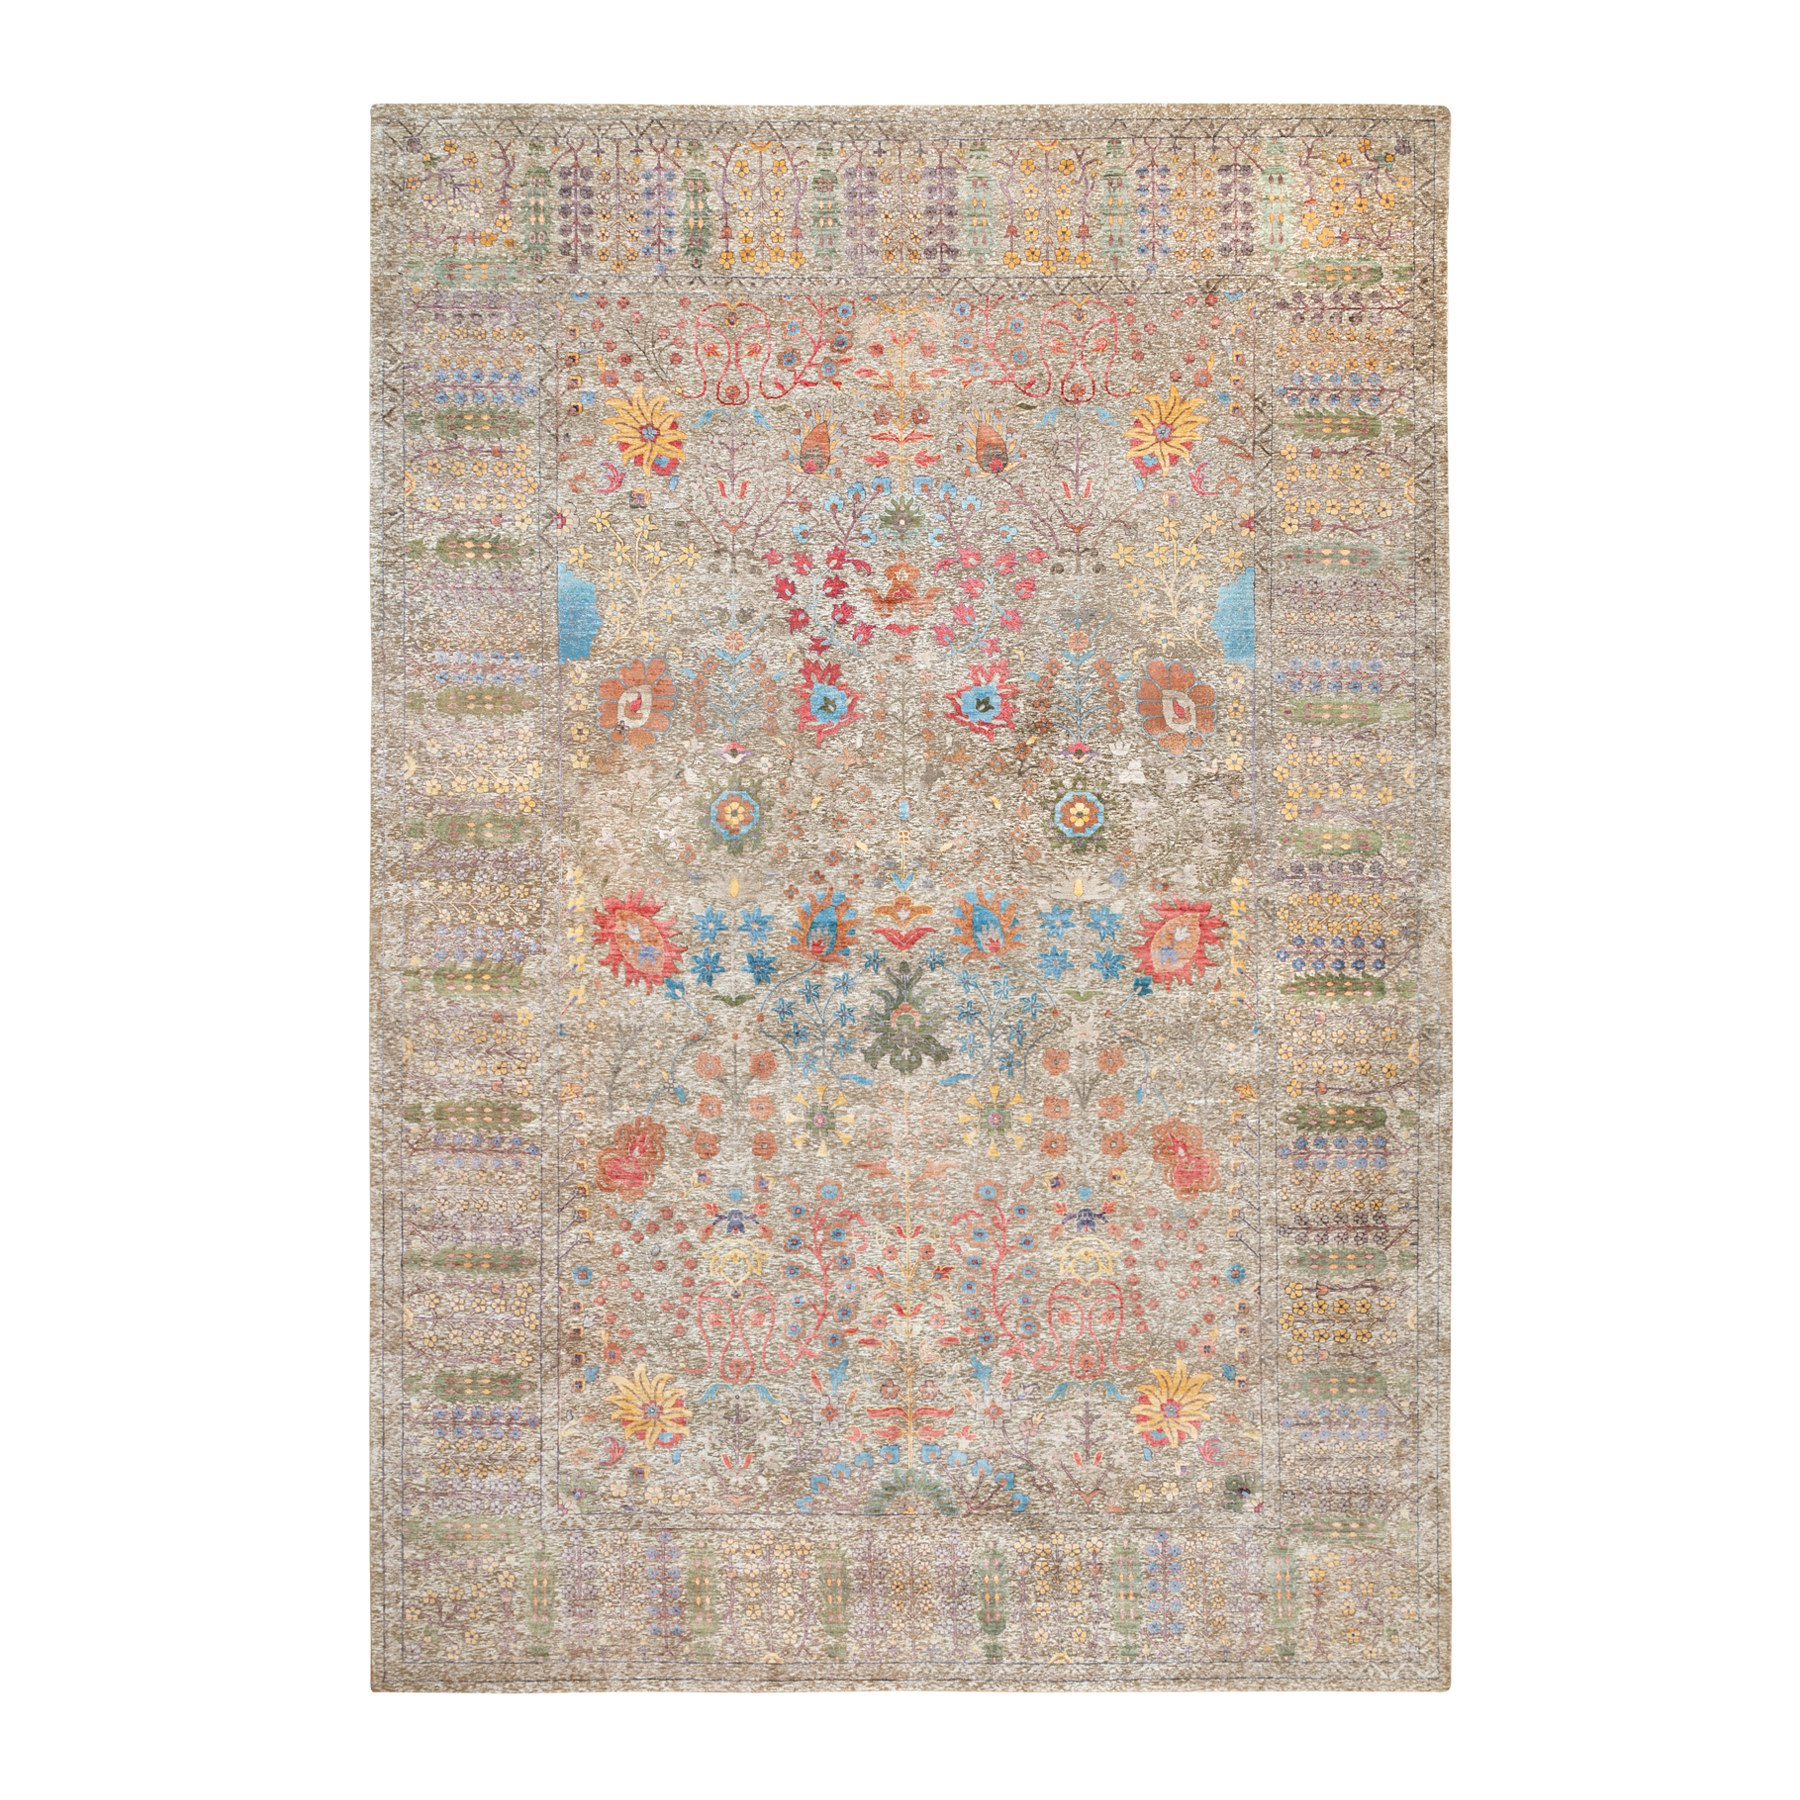 Wool and Real Silk Collection Hand Knotted Brown Rug No: 1117934